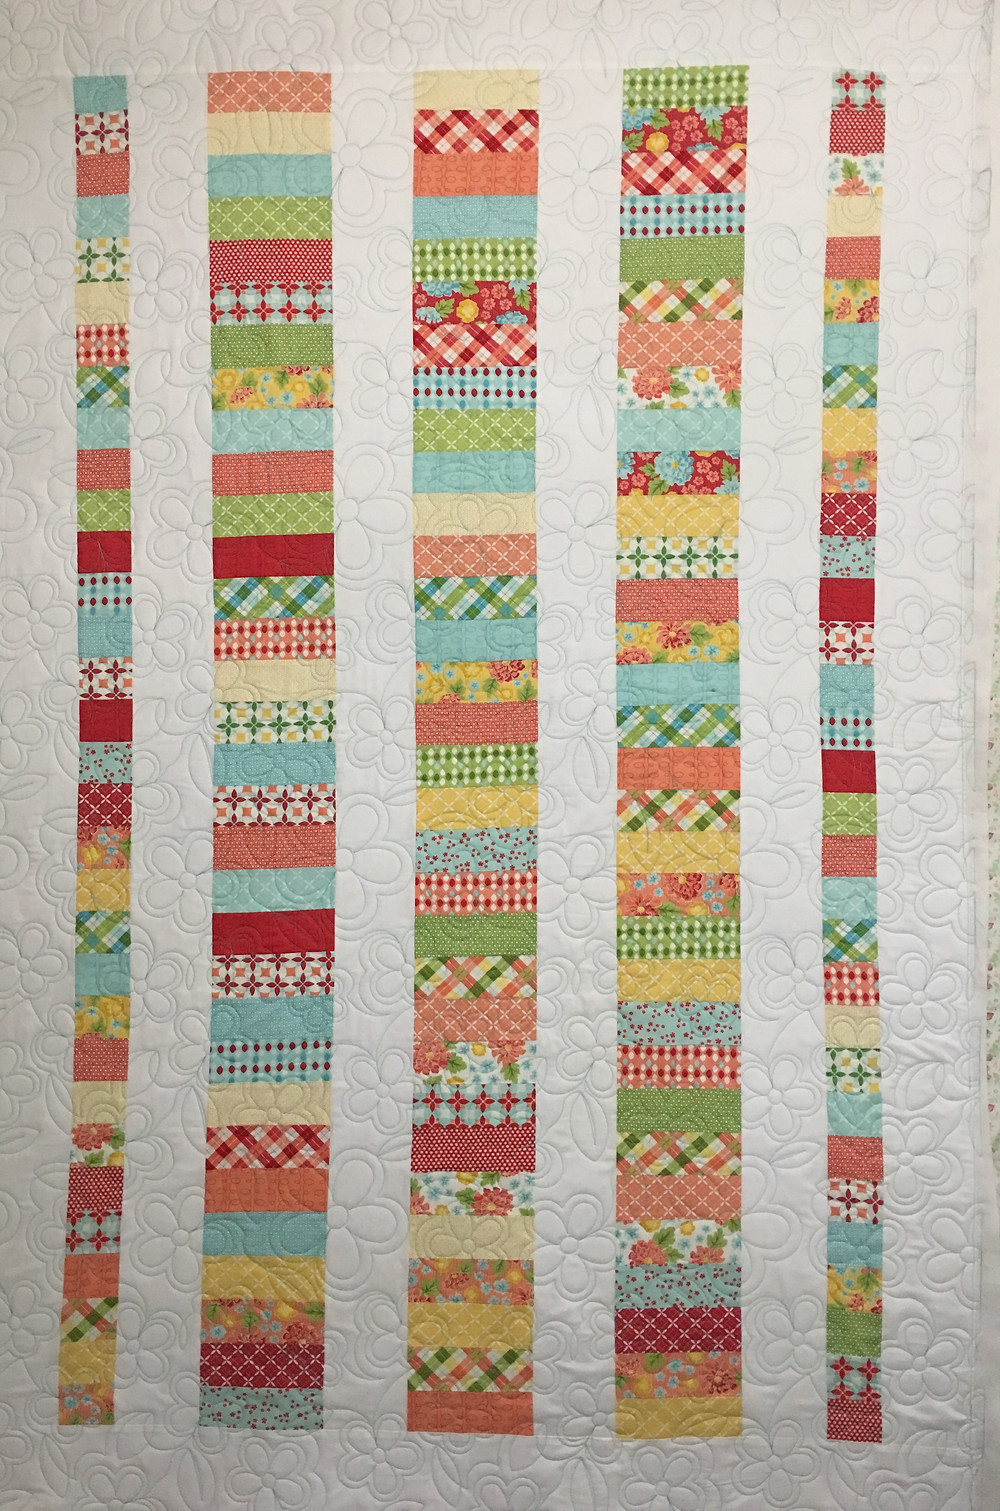 Jelly Rolly Quilt by Debbie Seitz